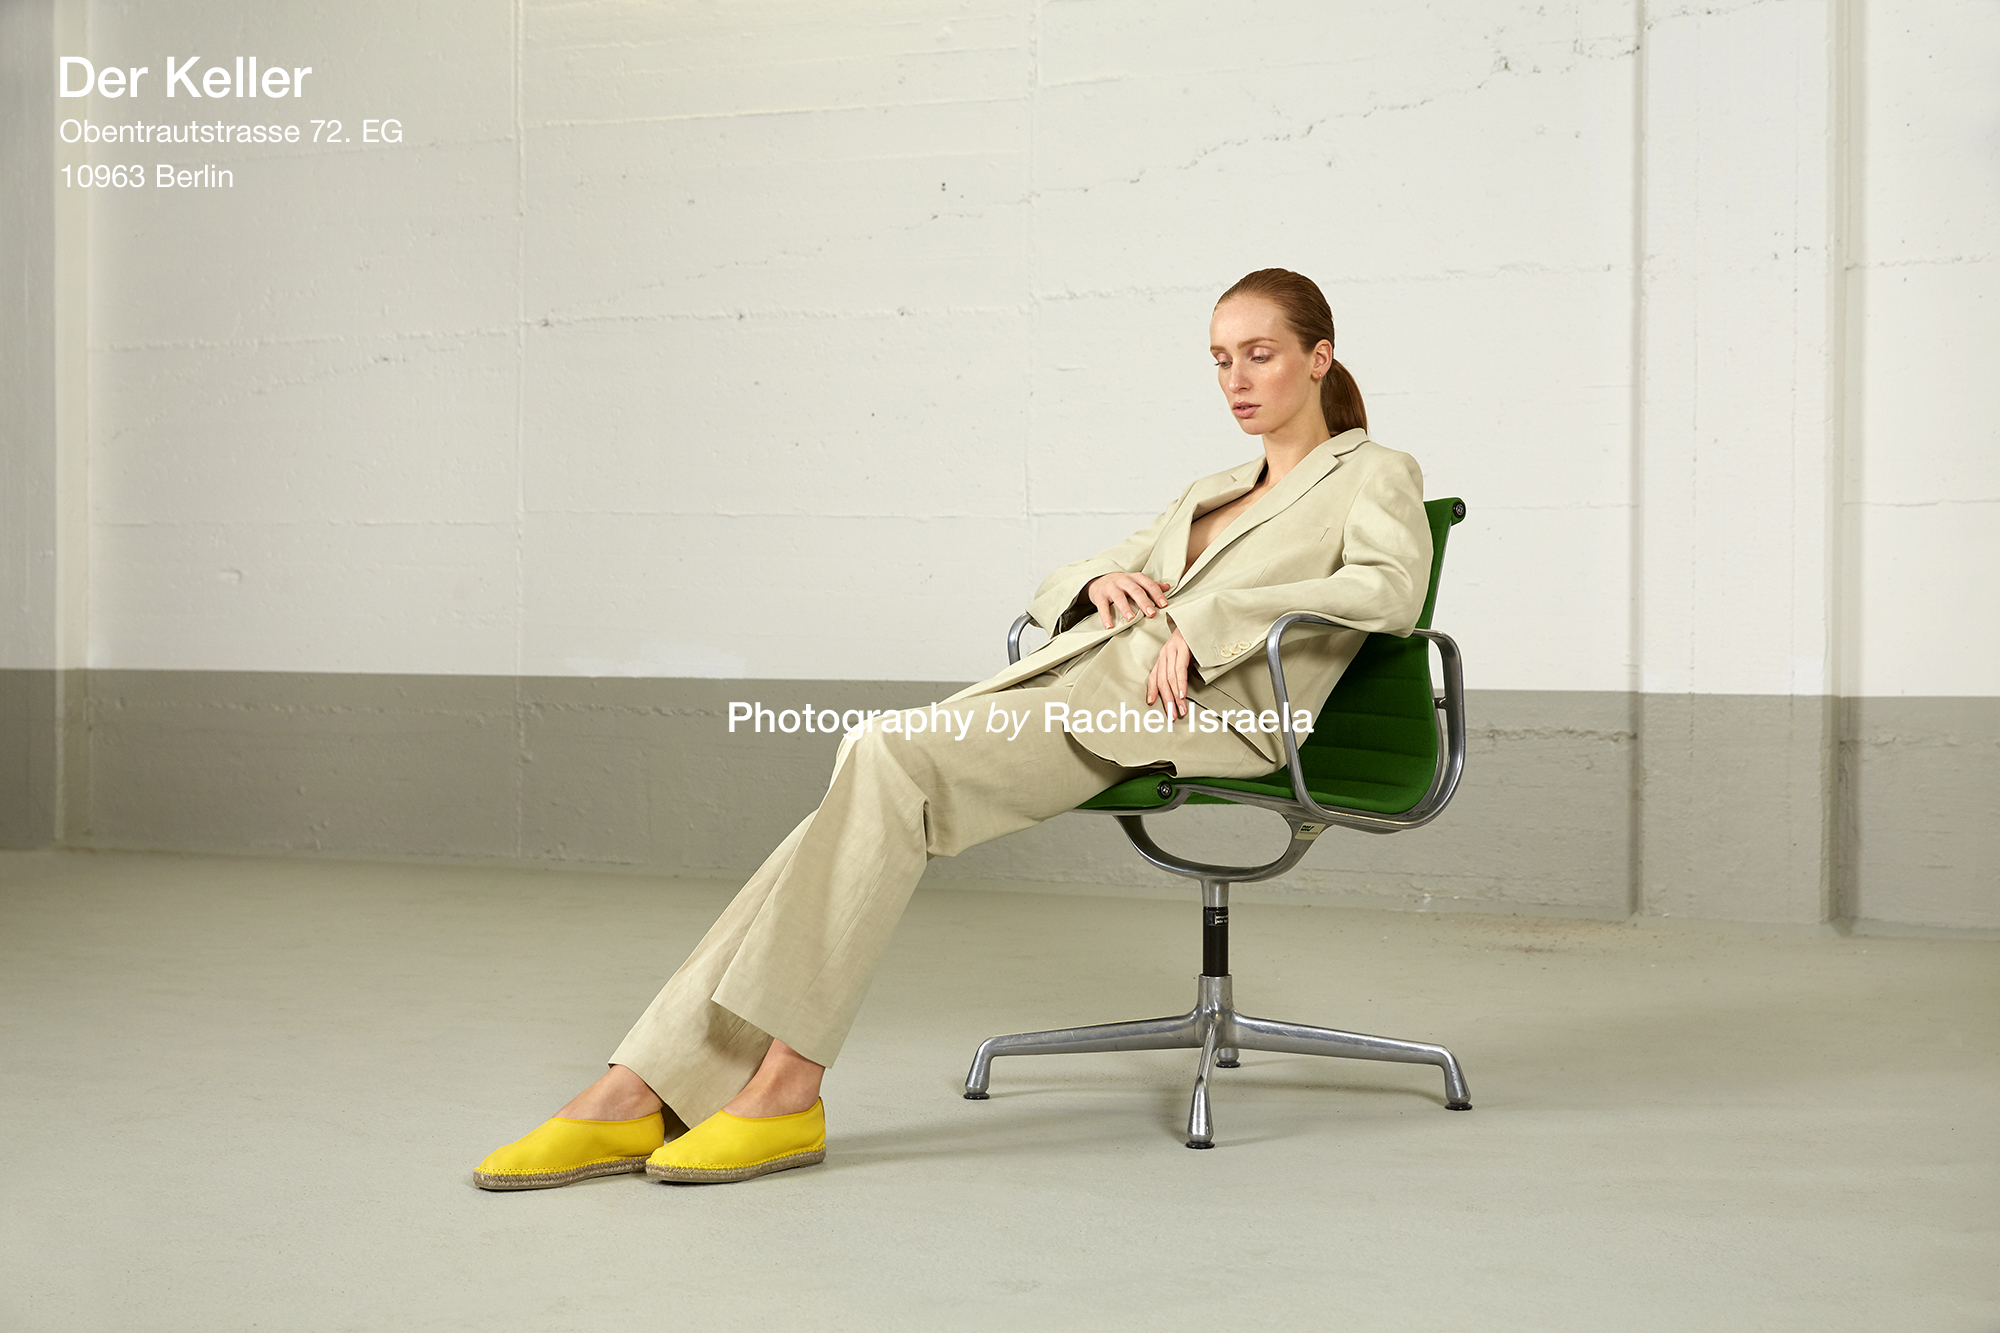 Act.Series-Journal-Der-Keller-Edvard-Yellow-Lether-Espadrilles-outfit.jpg